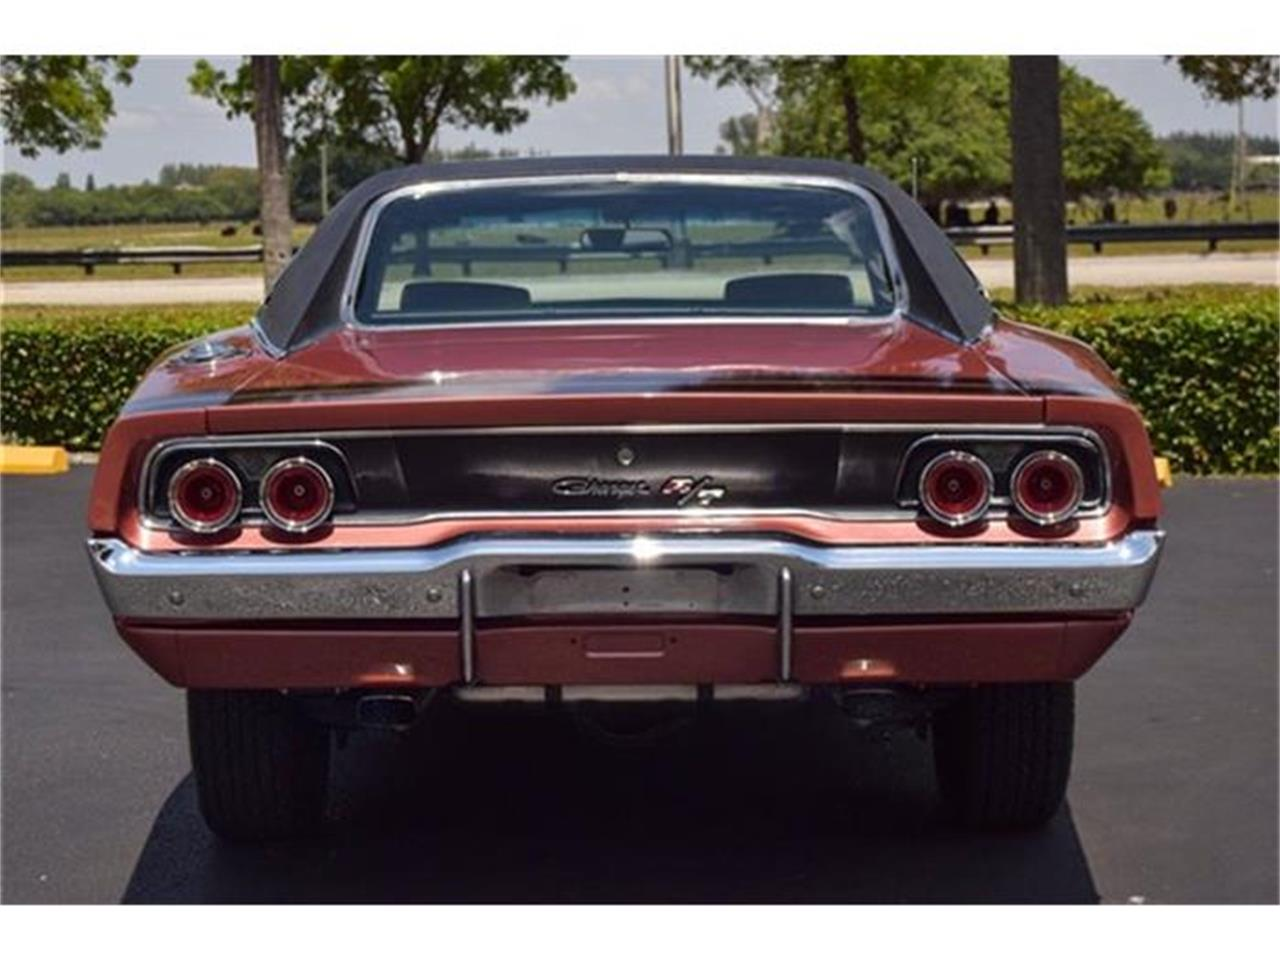 Large Picture of Classic '68 Dodge Charger R/T located in Florida - $134,900.00 - F3VL